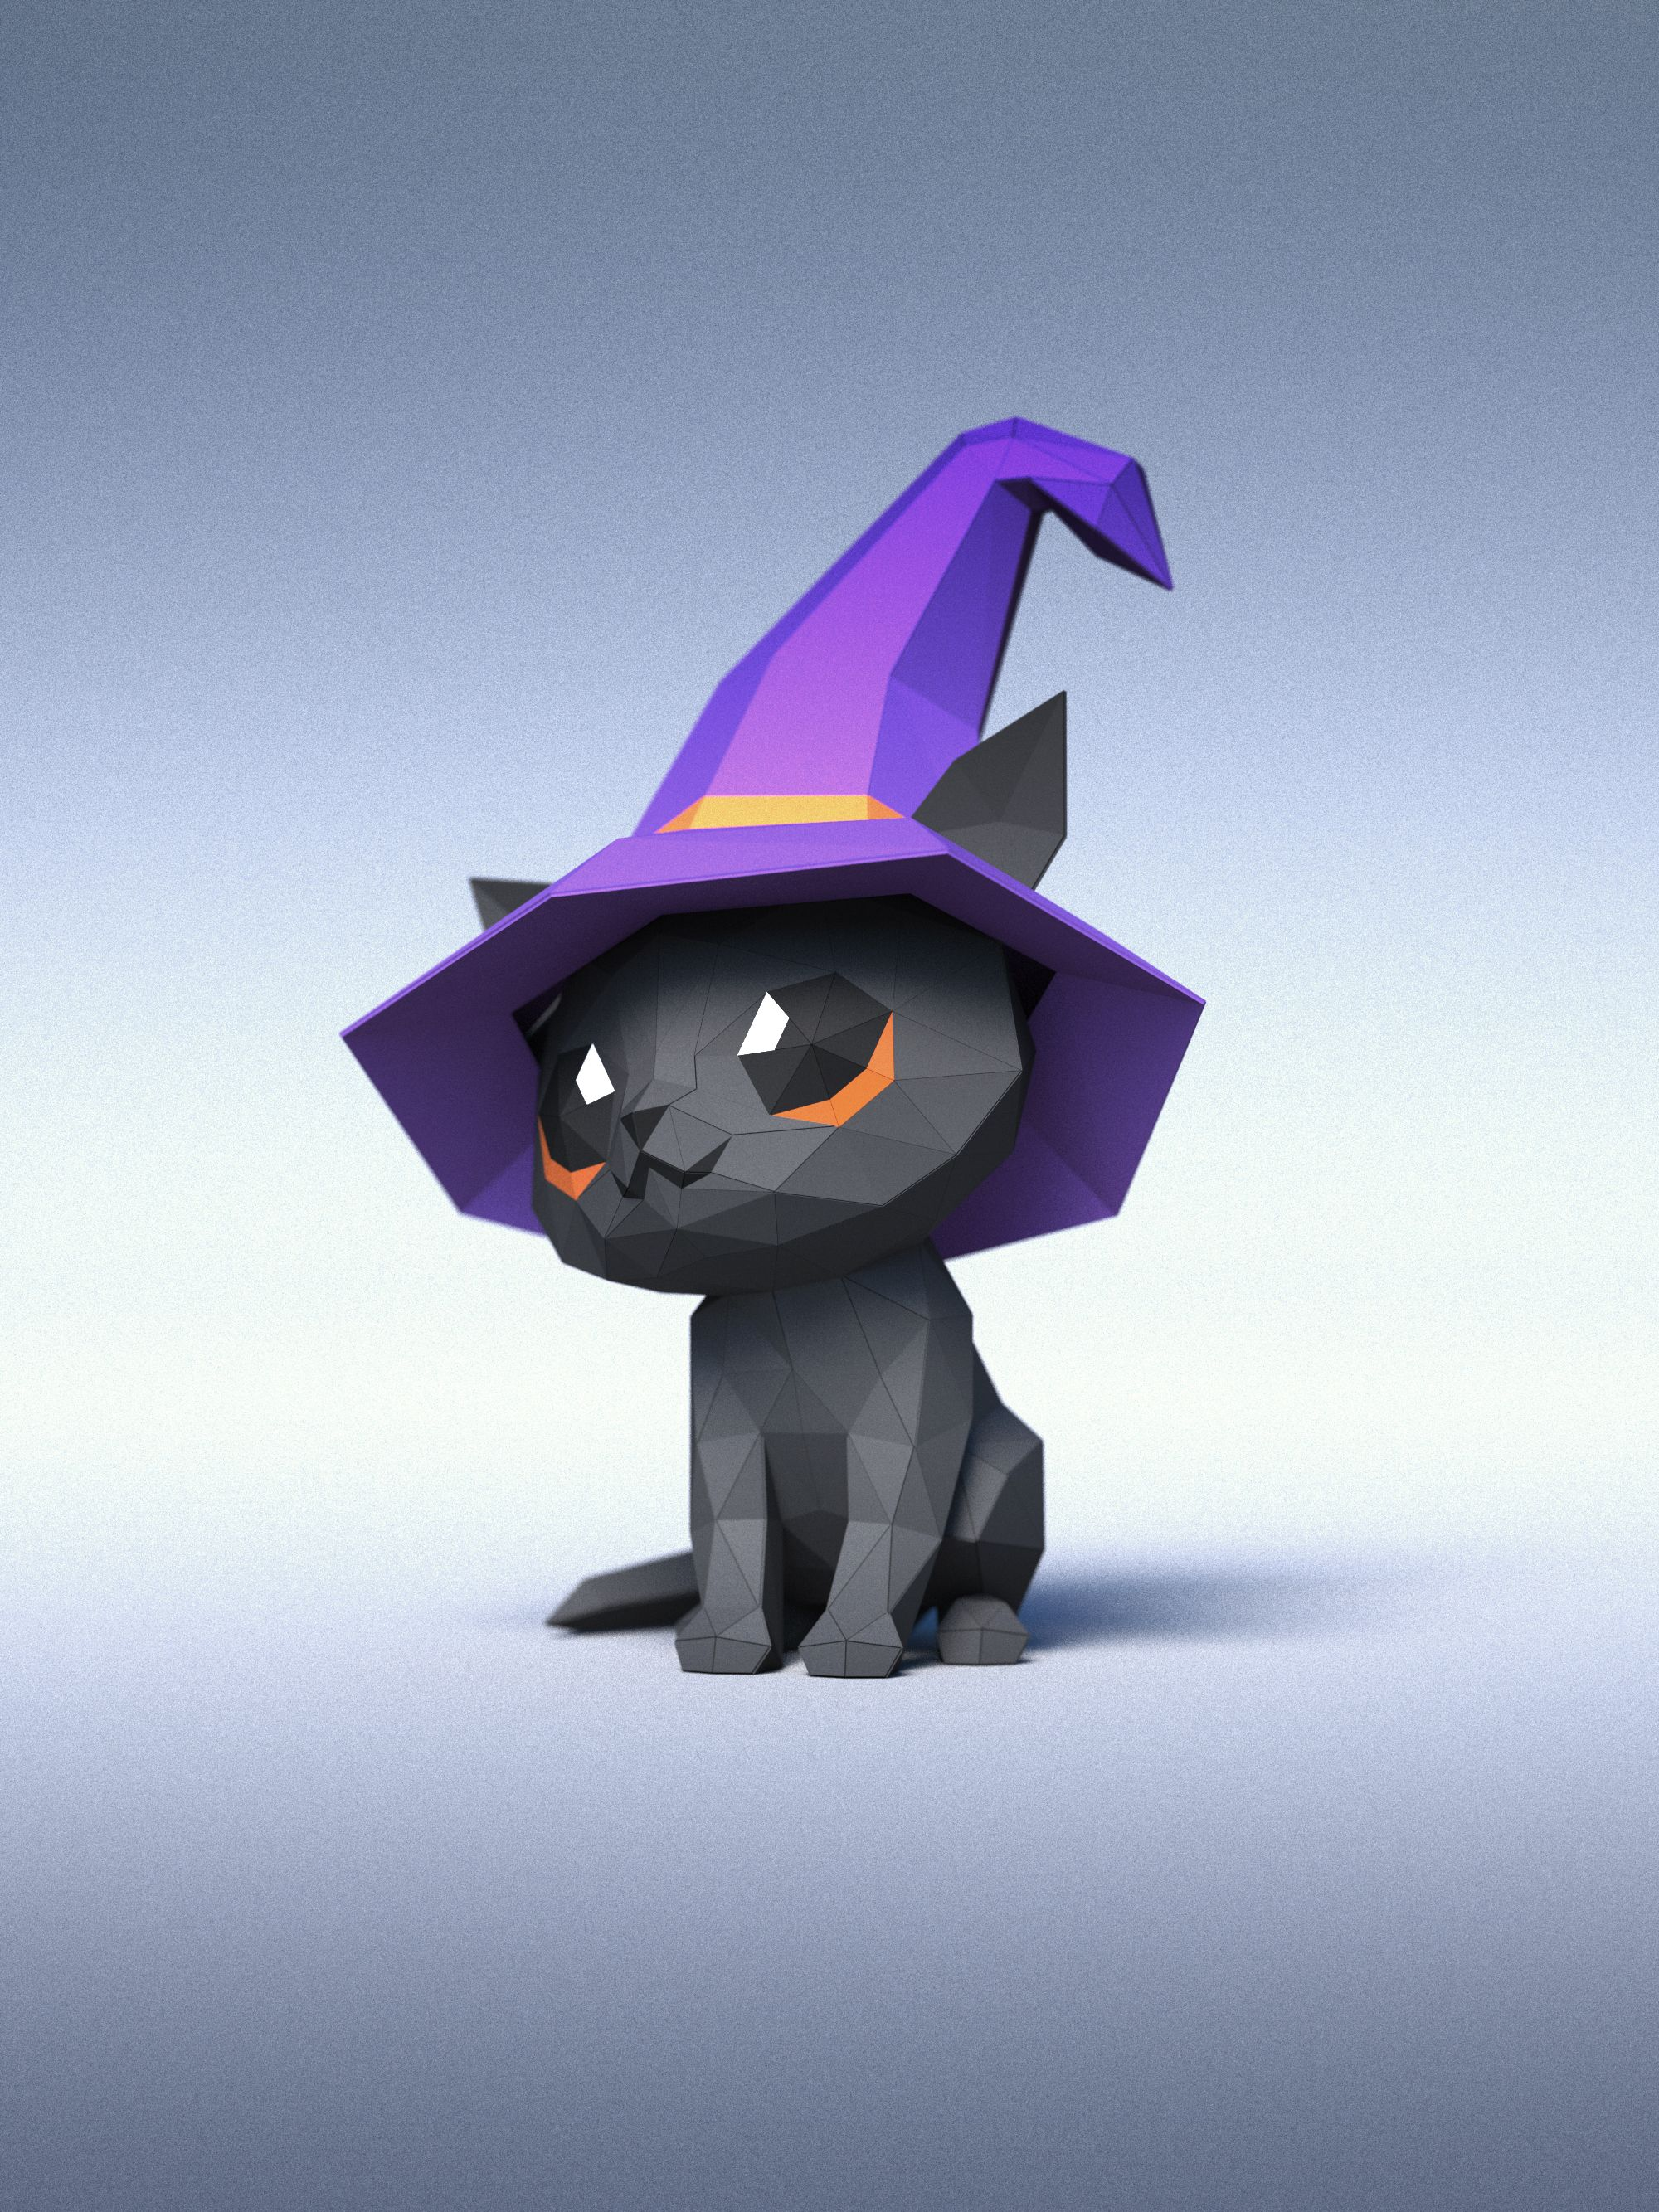 3D papercraft - Black Cat In A Hat DIY - Templates (Including colored version) Updated 19/10/2020 - PDF - DXF